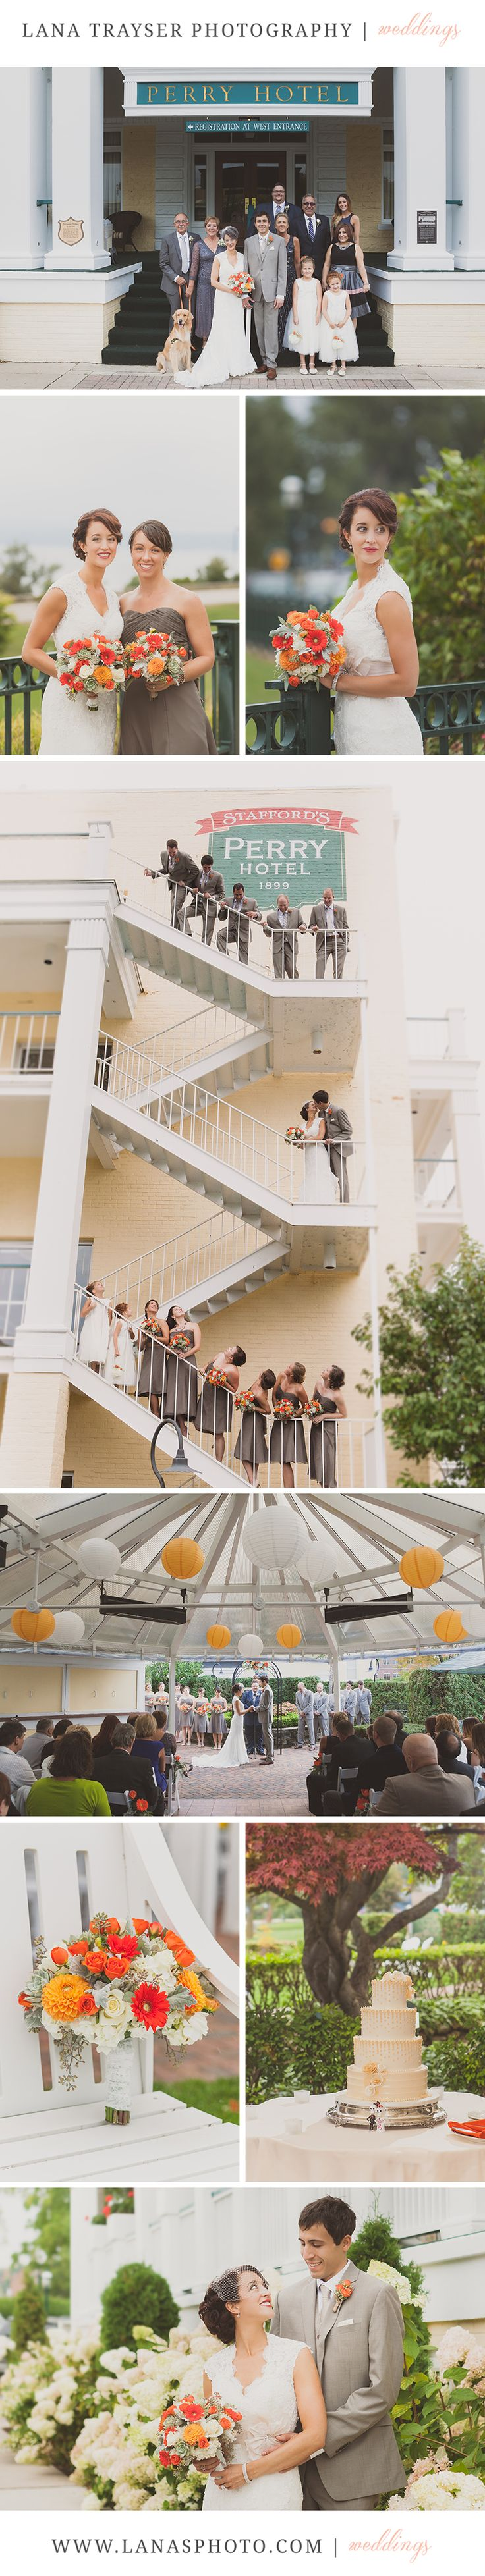 Bridal Party | Petoskey wedding |Perry Hotel | Lana Trayser Photography | Michigan wedding photography